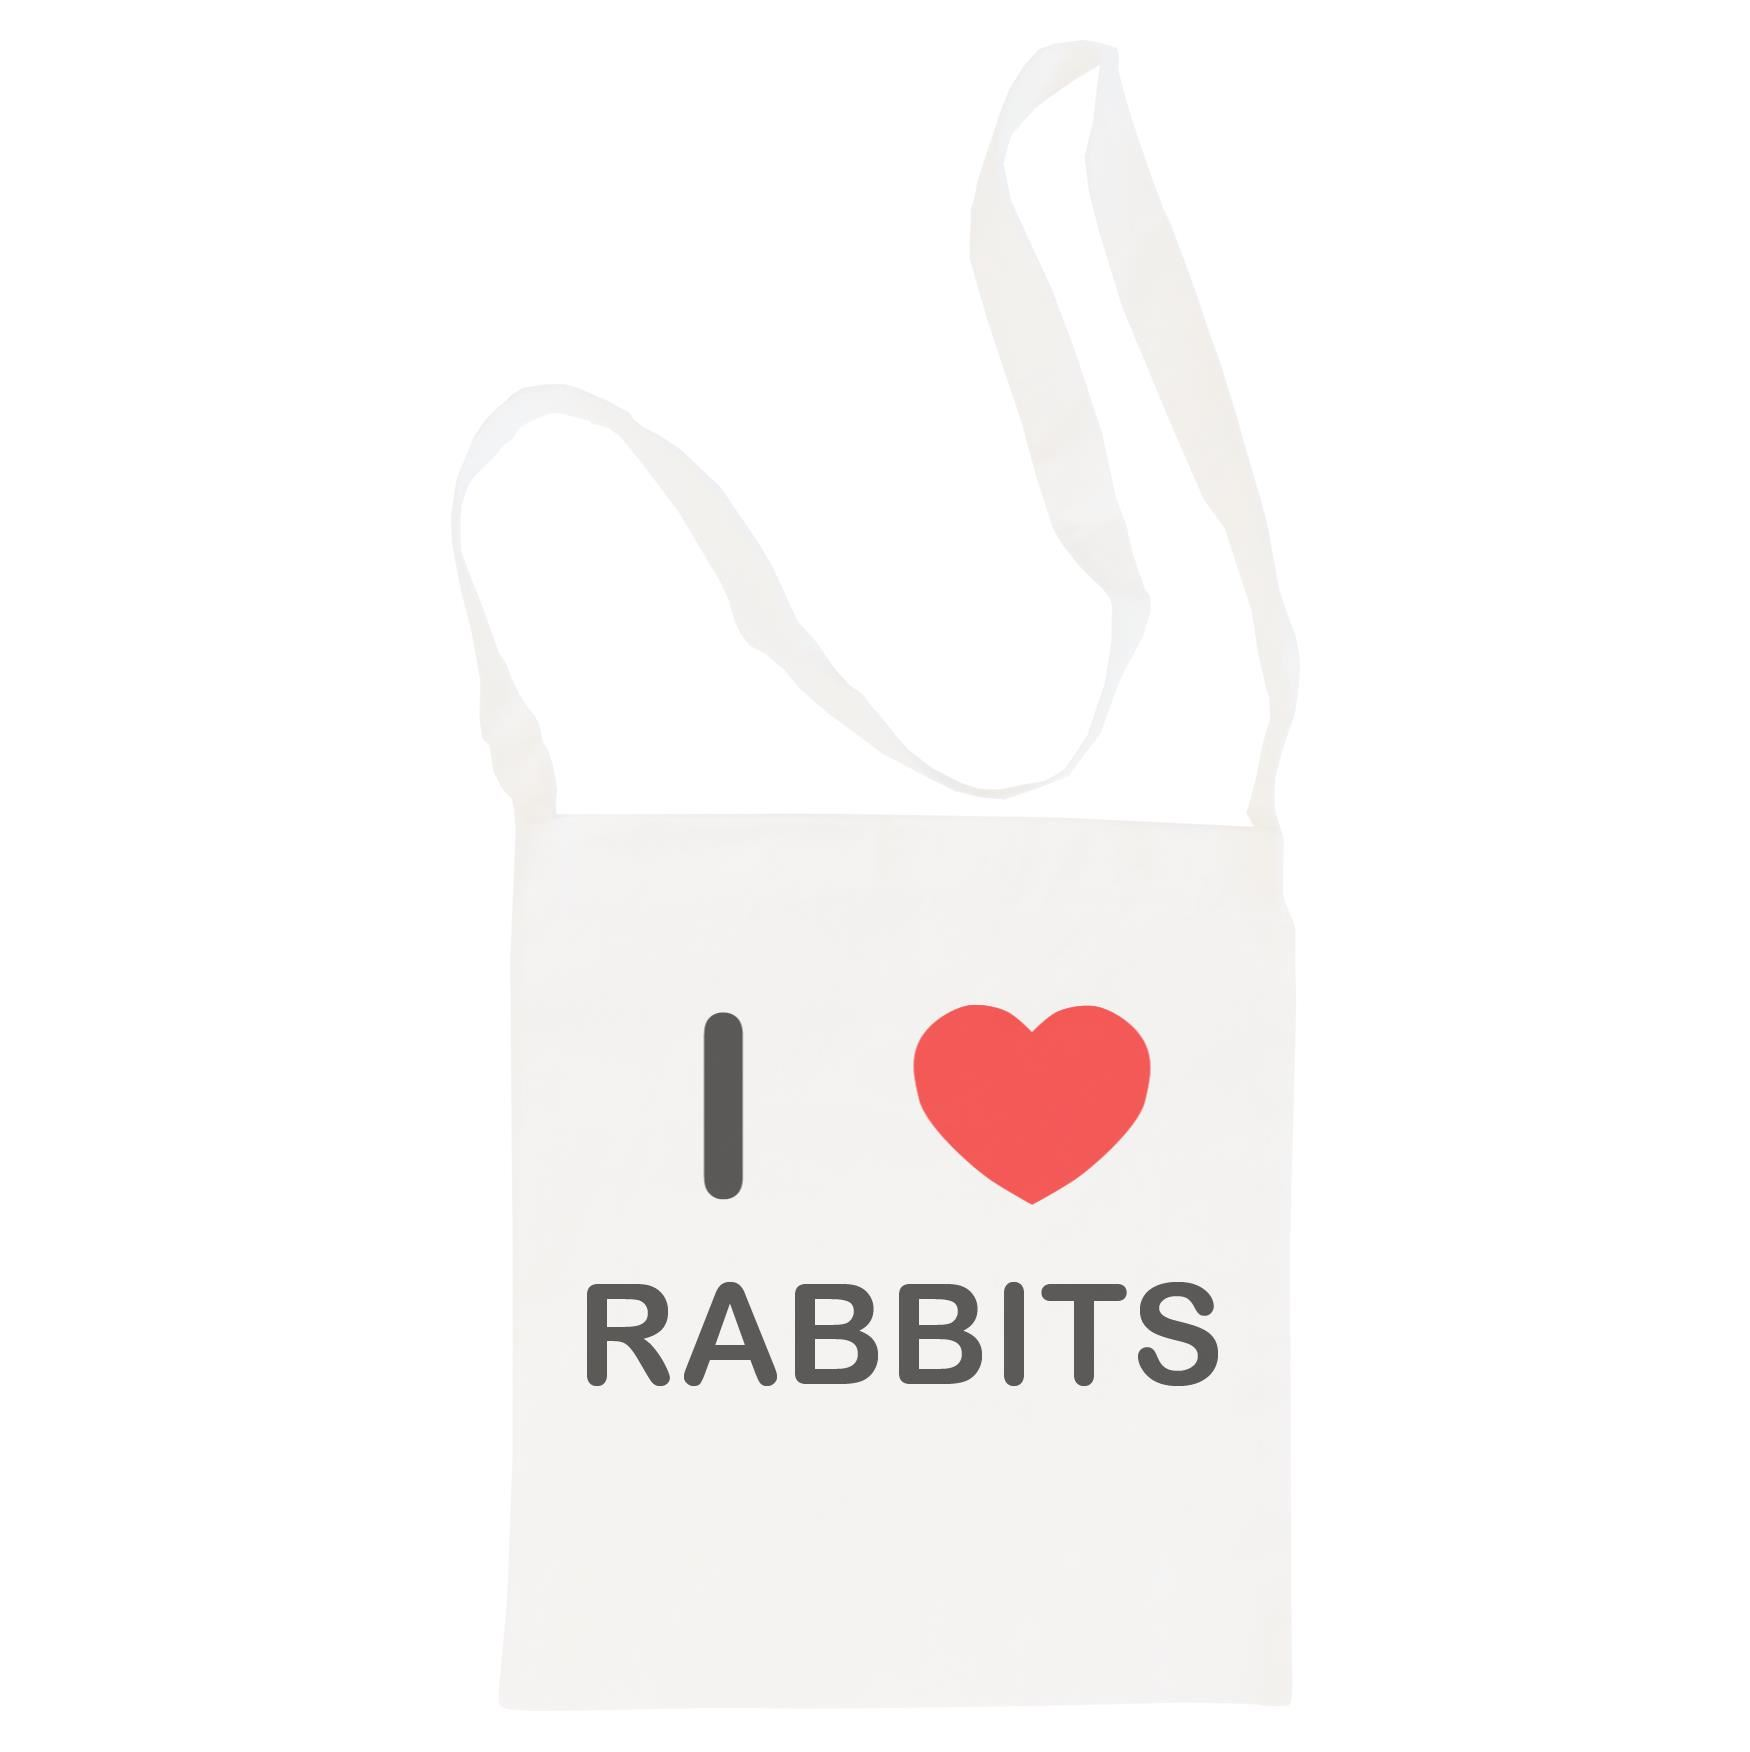 I Love Rabbits - Cotton Bag | Size choice Tote, Shopper or Sling